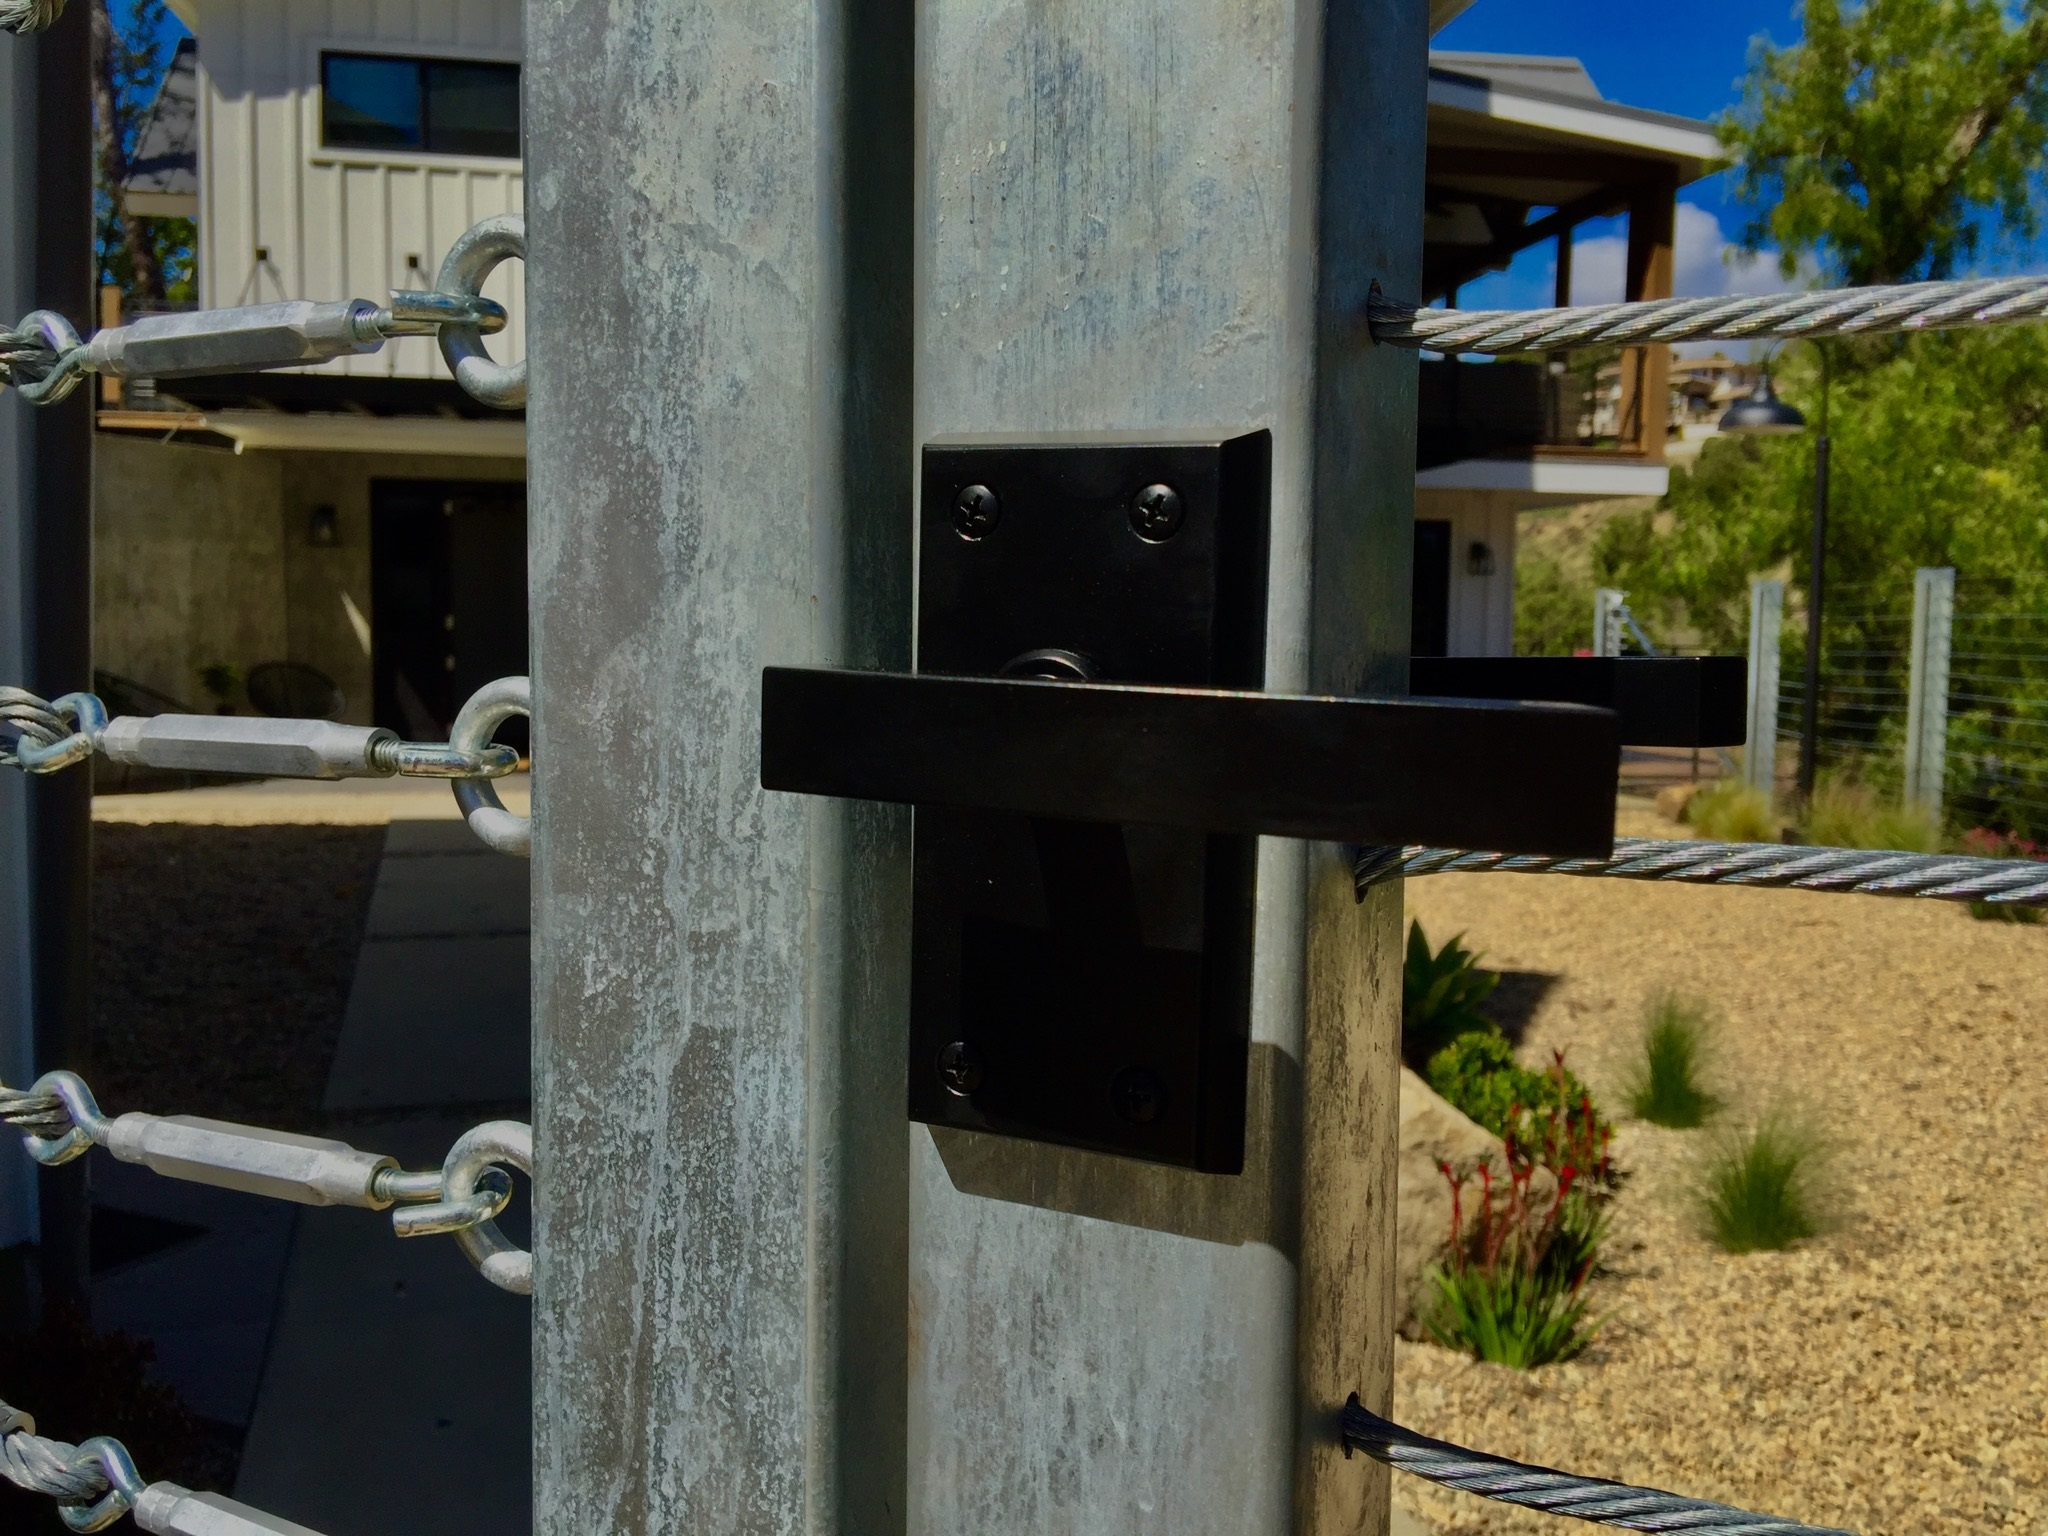 nero-contemporary-gate-latch-on-stainless-gate-at-contemporary-farmhouse.jpg